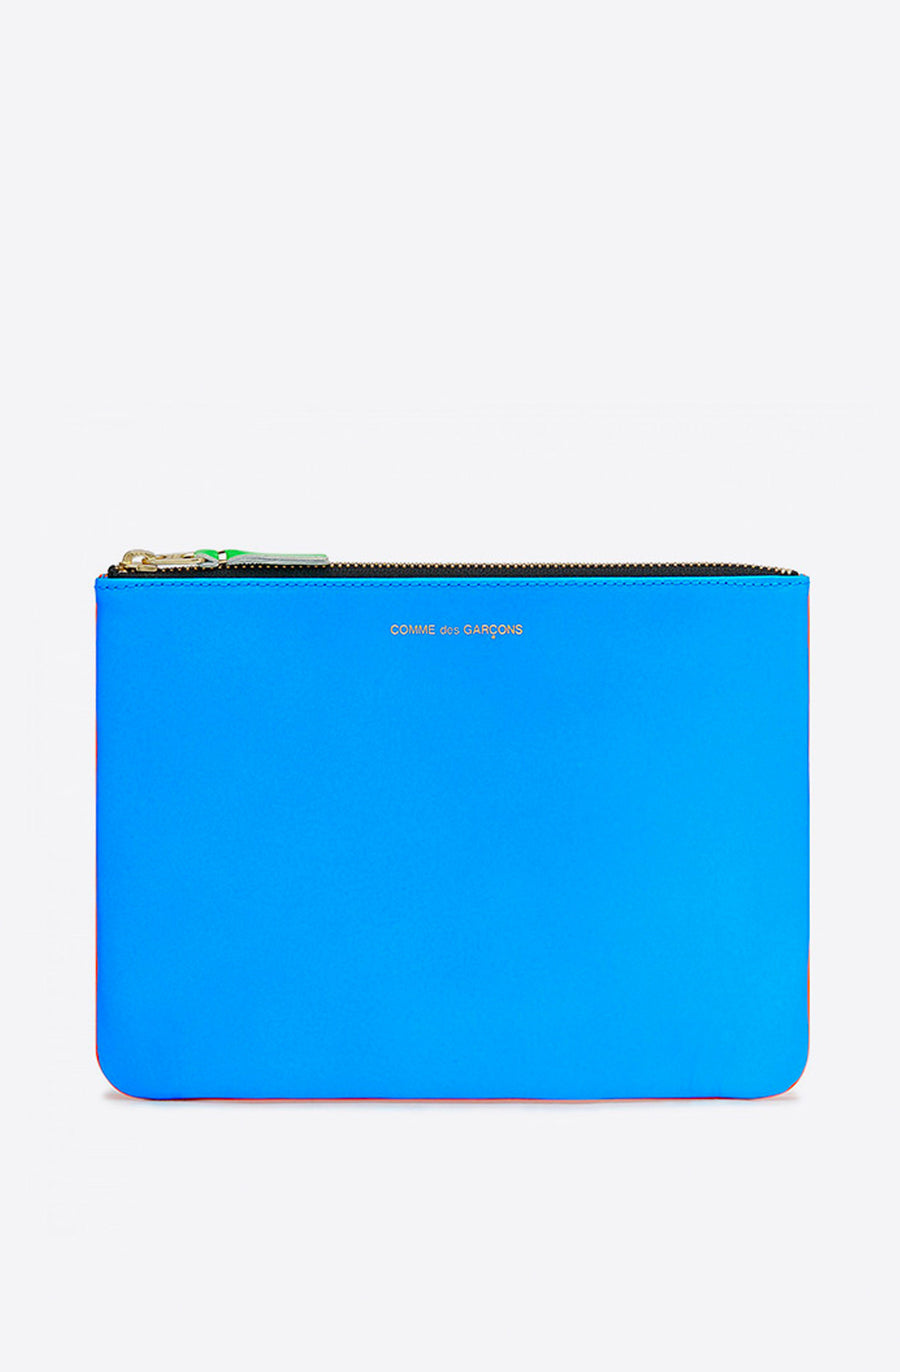 Super Fluo Large Zip Pouch-orange/blue